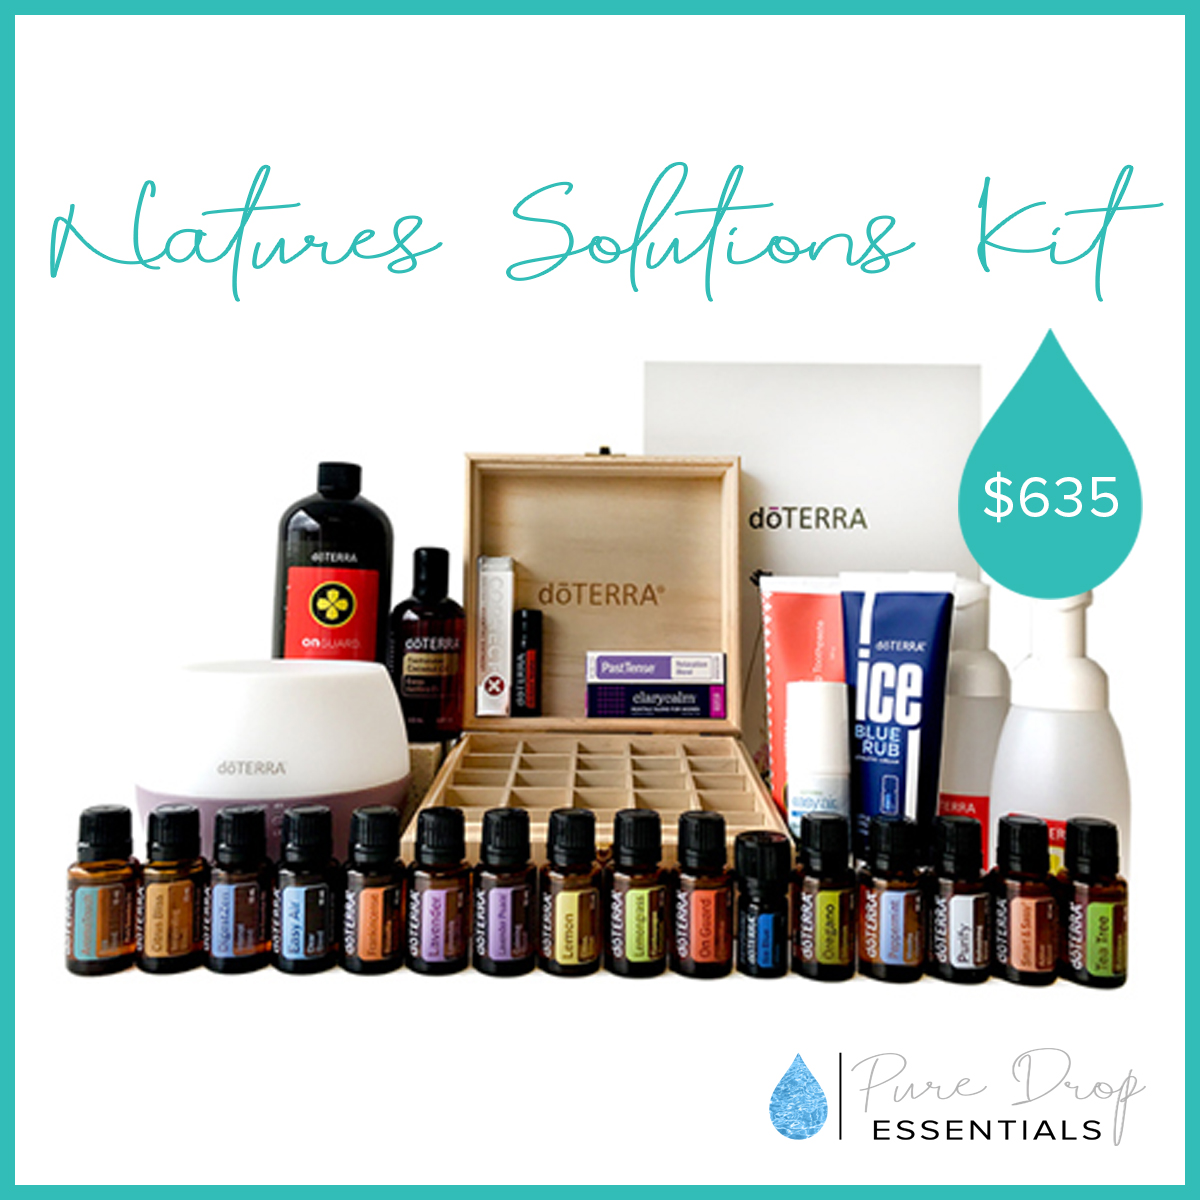 doTERRA's Natures Solutions kit is the perfect kit to get you going with essential oils. It contains everything you need to support your families well-being and start your journey with reducing your toxic load